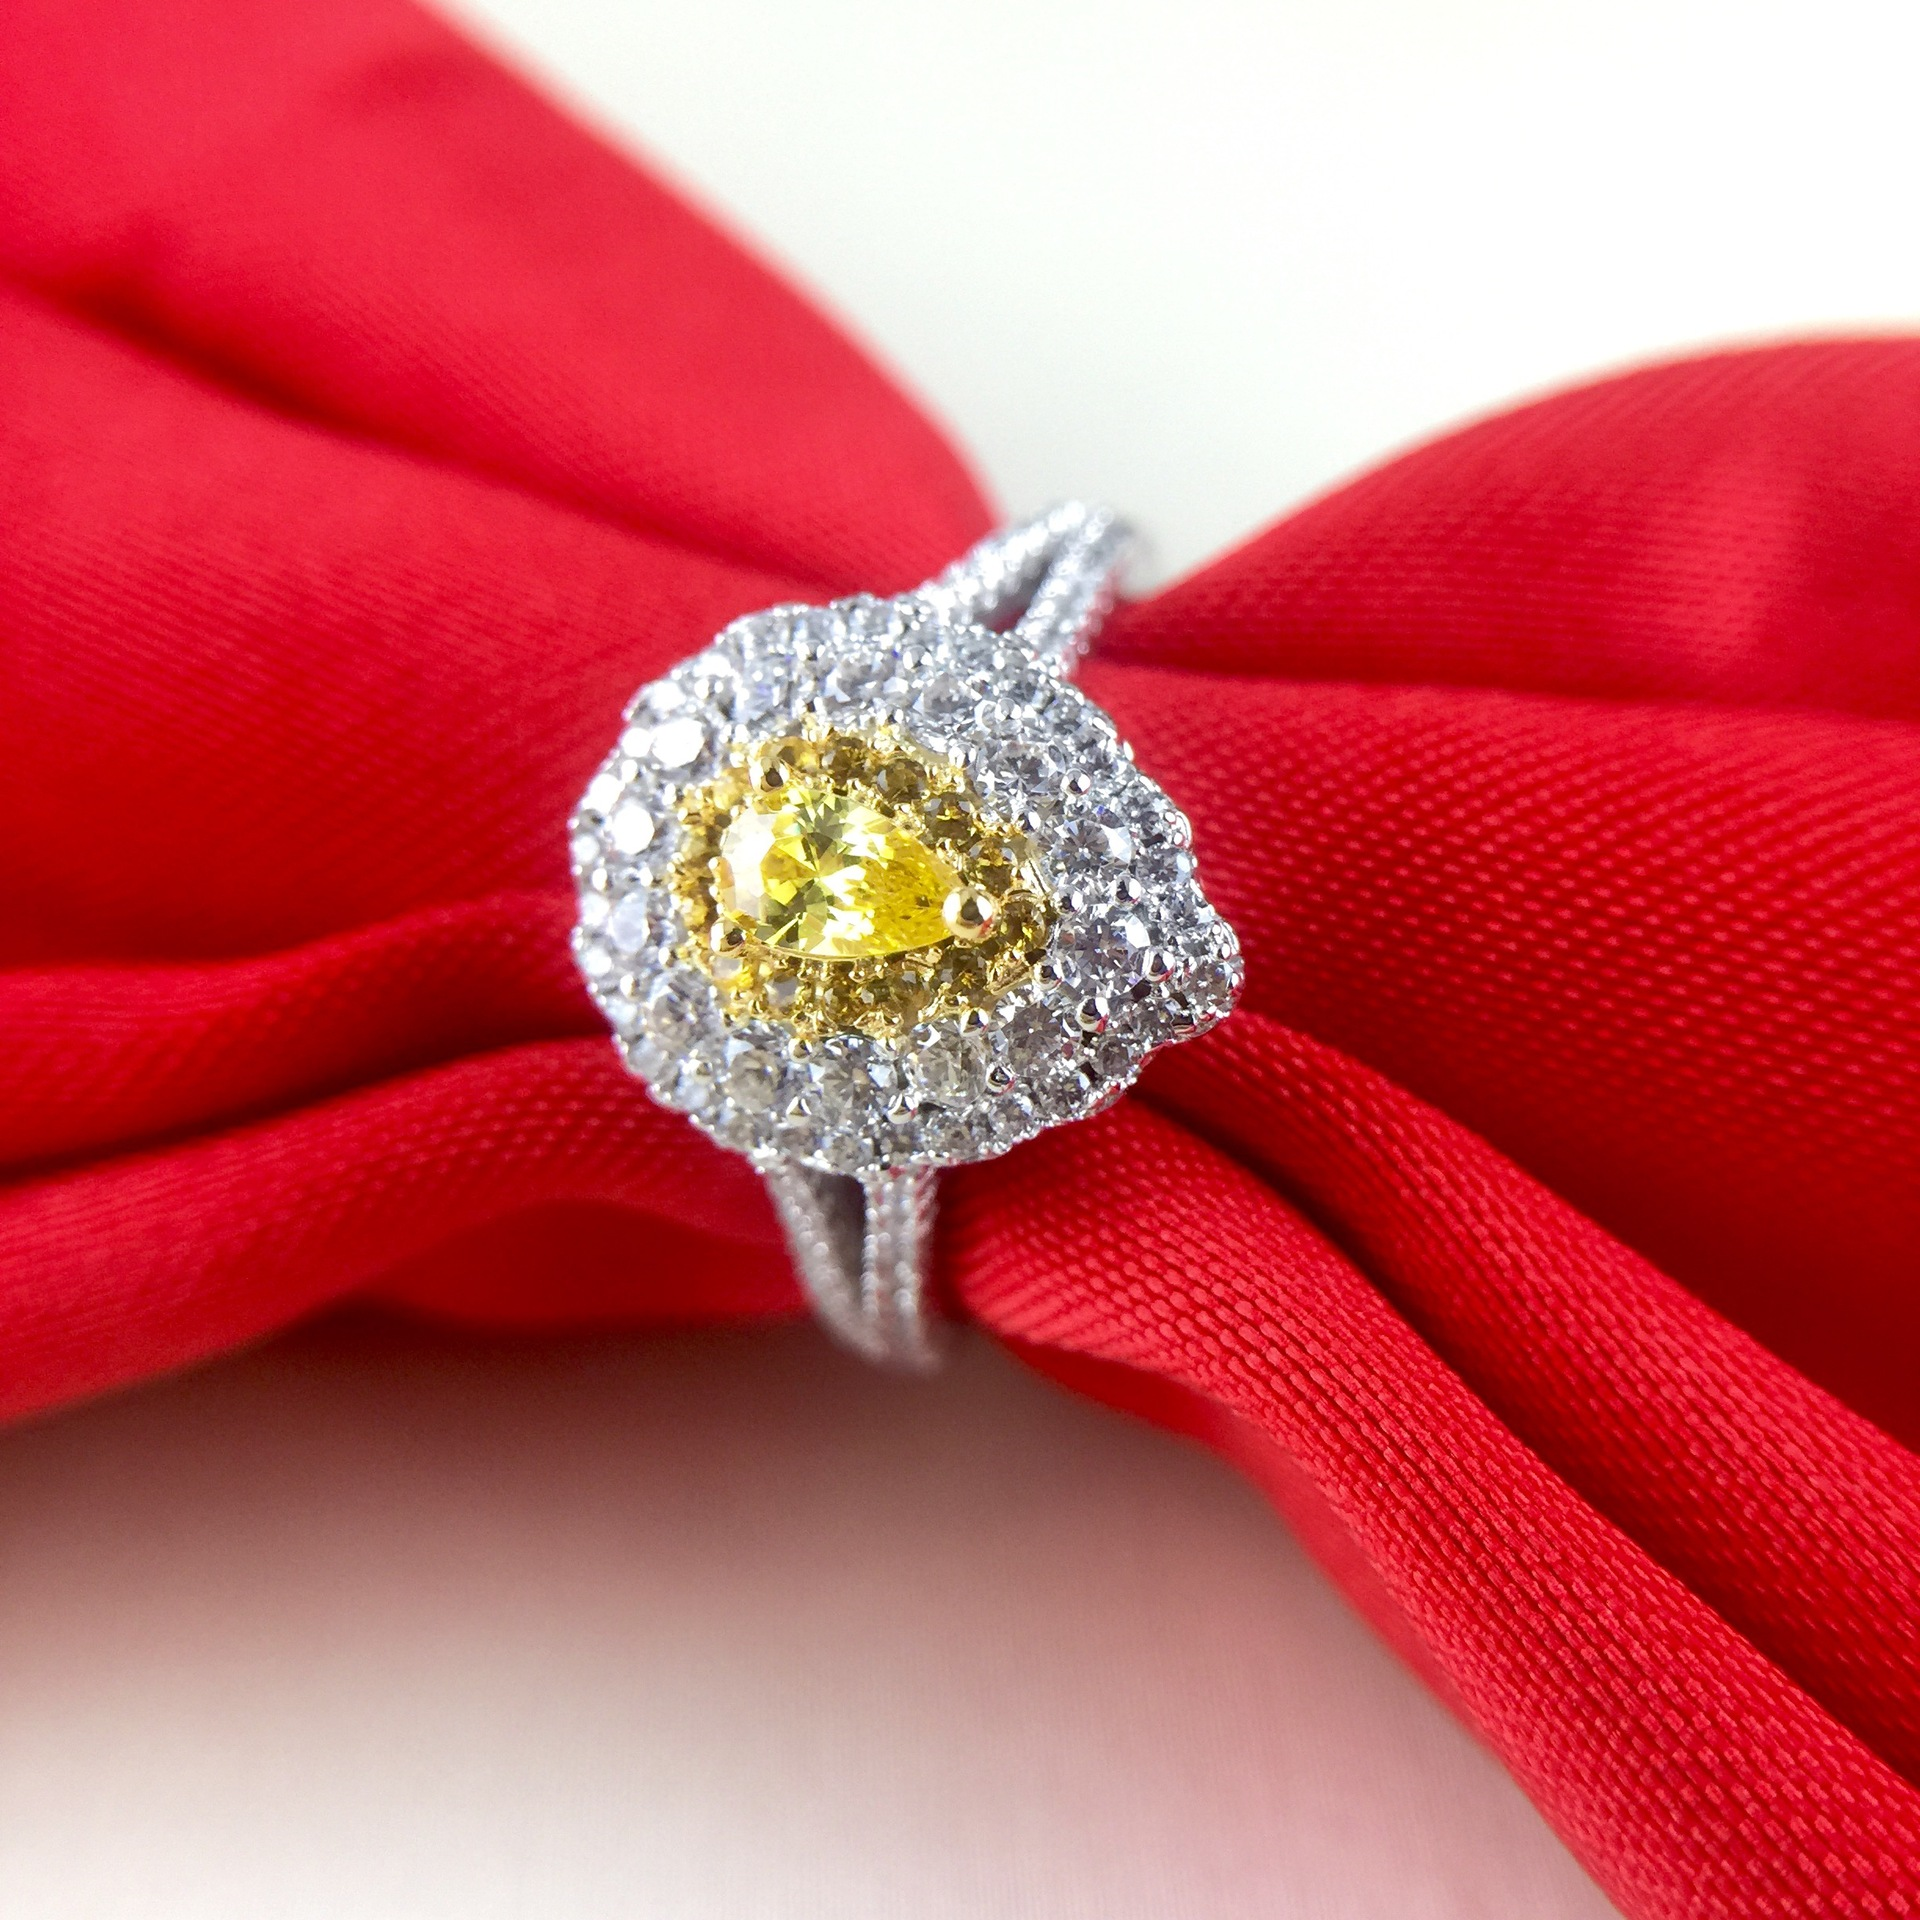 oro vow modern yellow available ring pin simple rings vrai diamond engagement white gold and man wedding made in rose solitaire